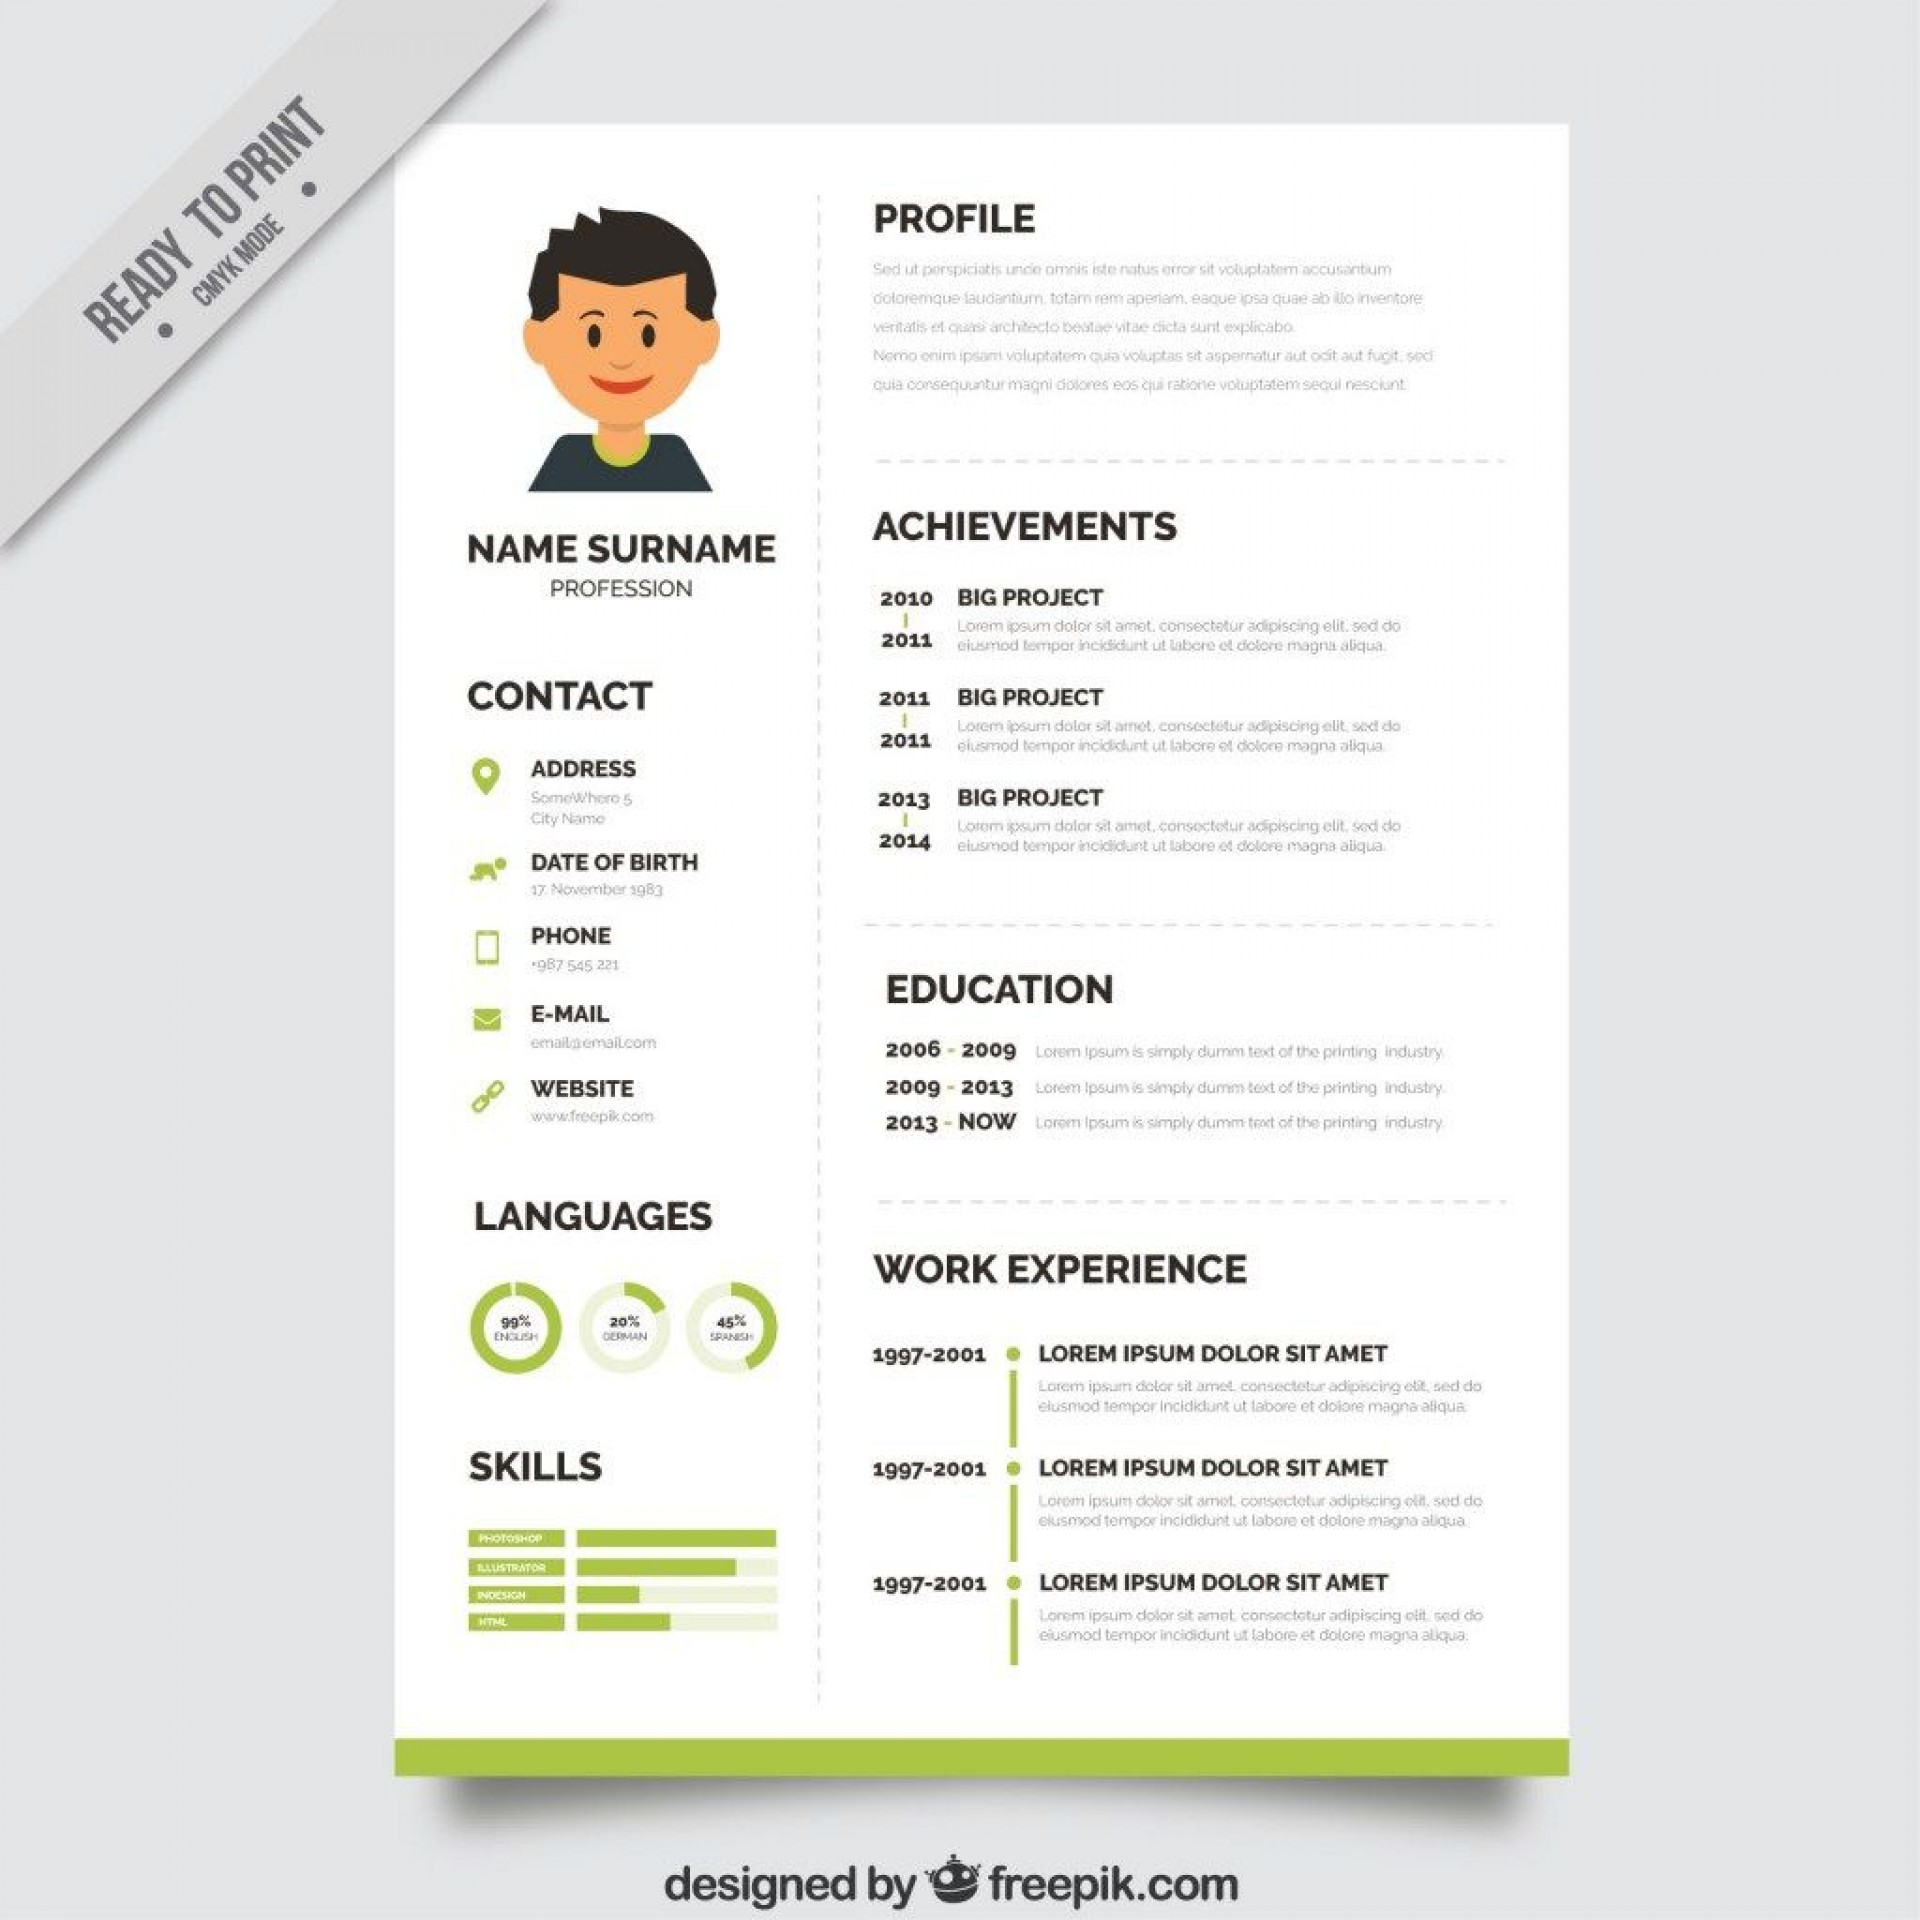 004 Magnificent Download Resume Template Free Design  For Mac Best Creative Professional Microsoft Word1920